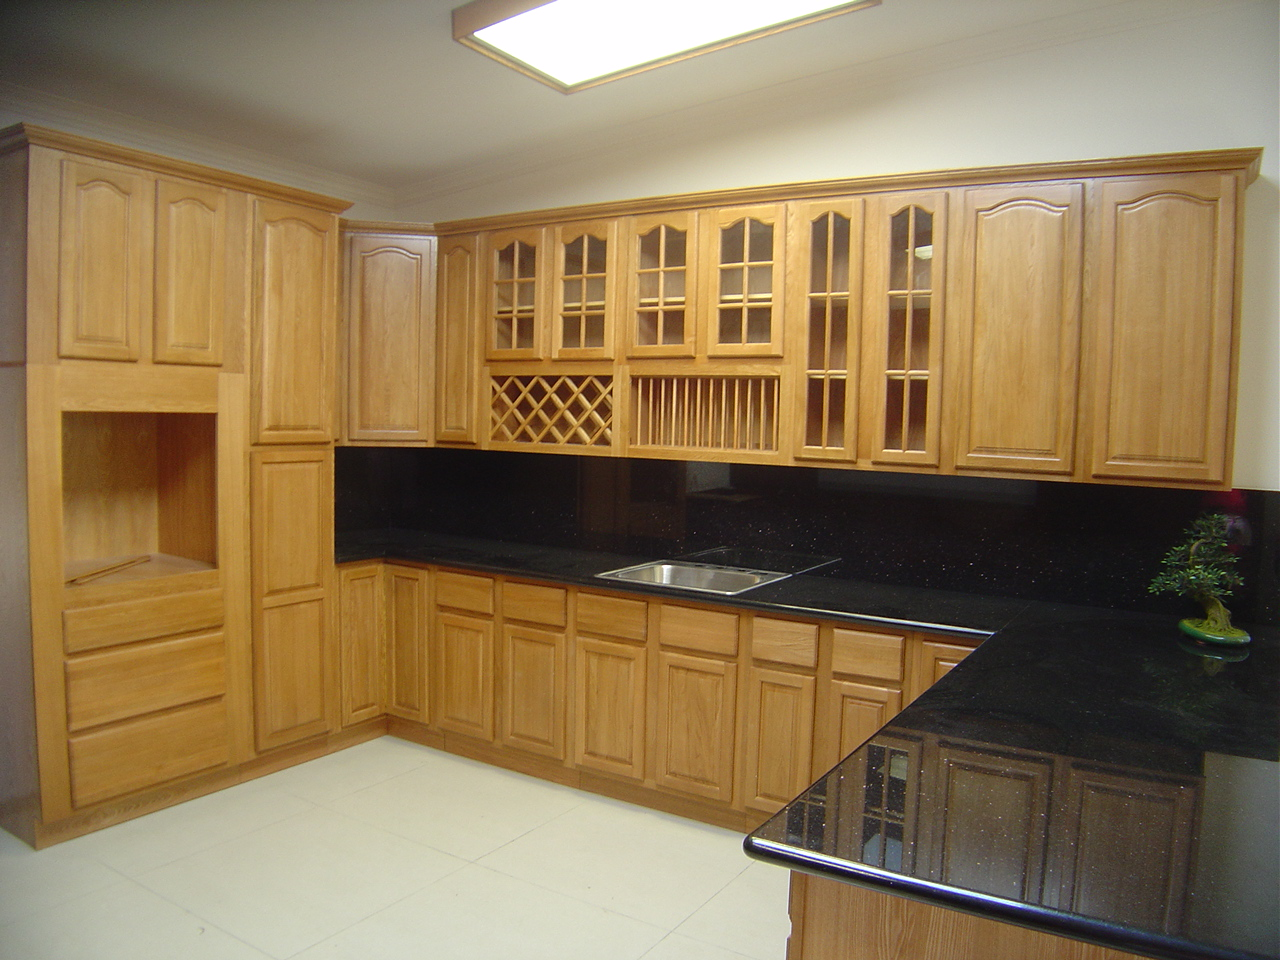 Kitchen Cabinet Design Of Special Kitchen Cabinet Design And Decor Design Interior